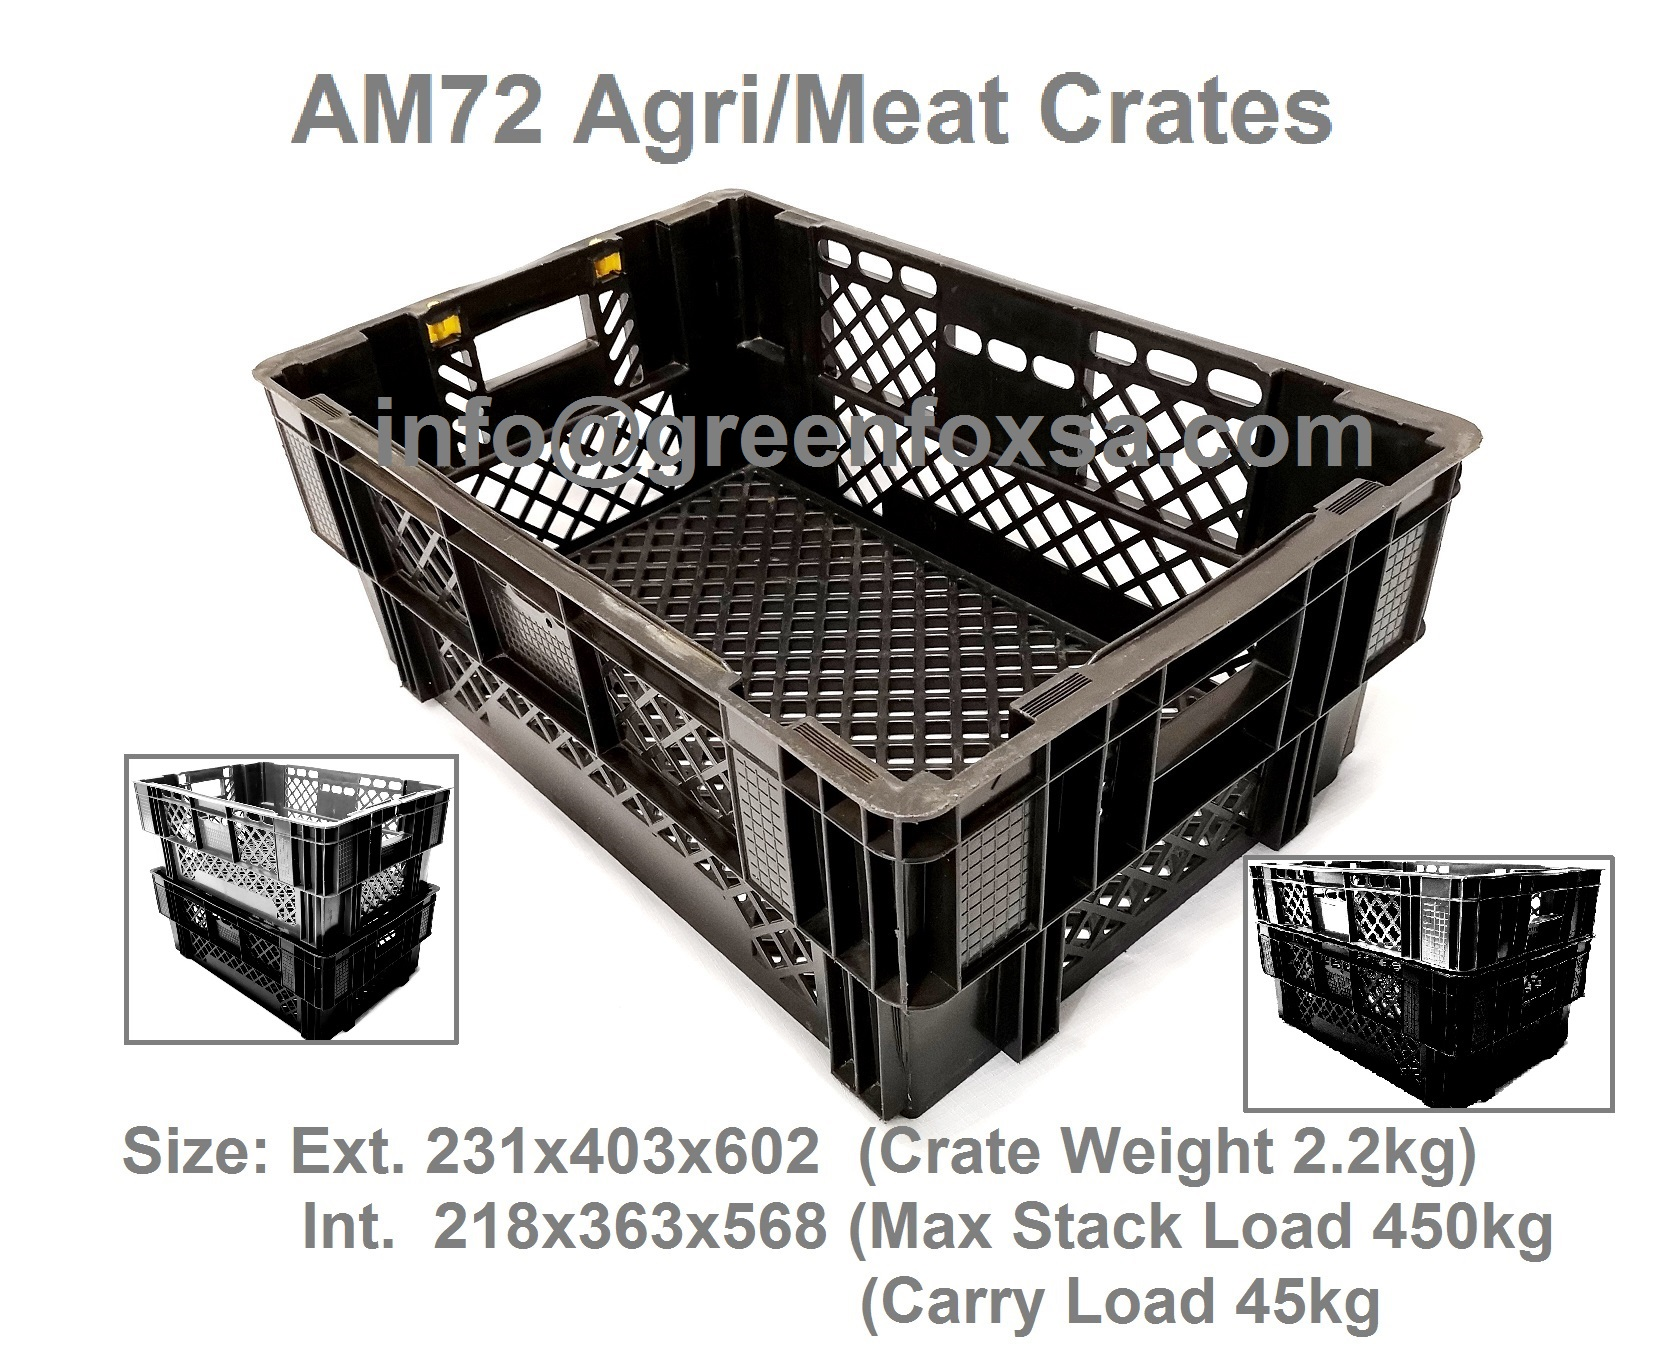 plastic-crates-black-virgin-agricultural-meat-